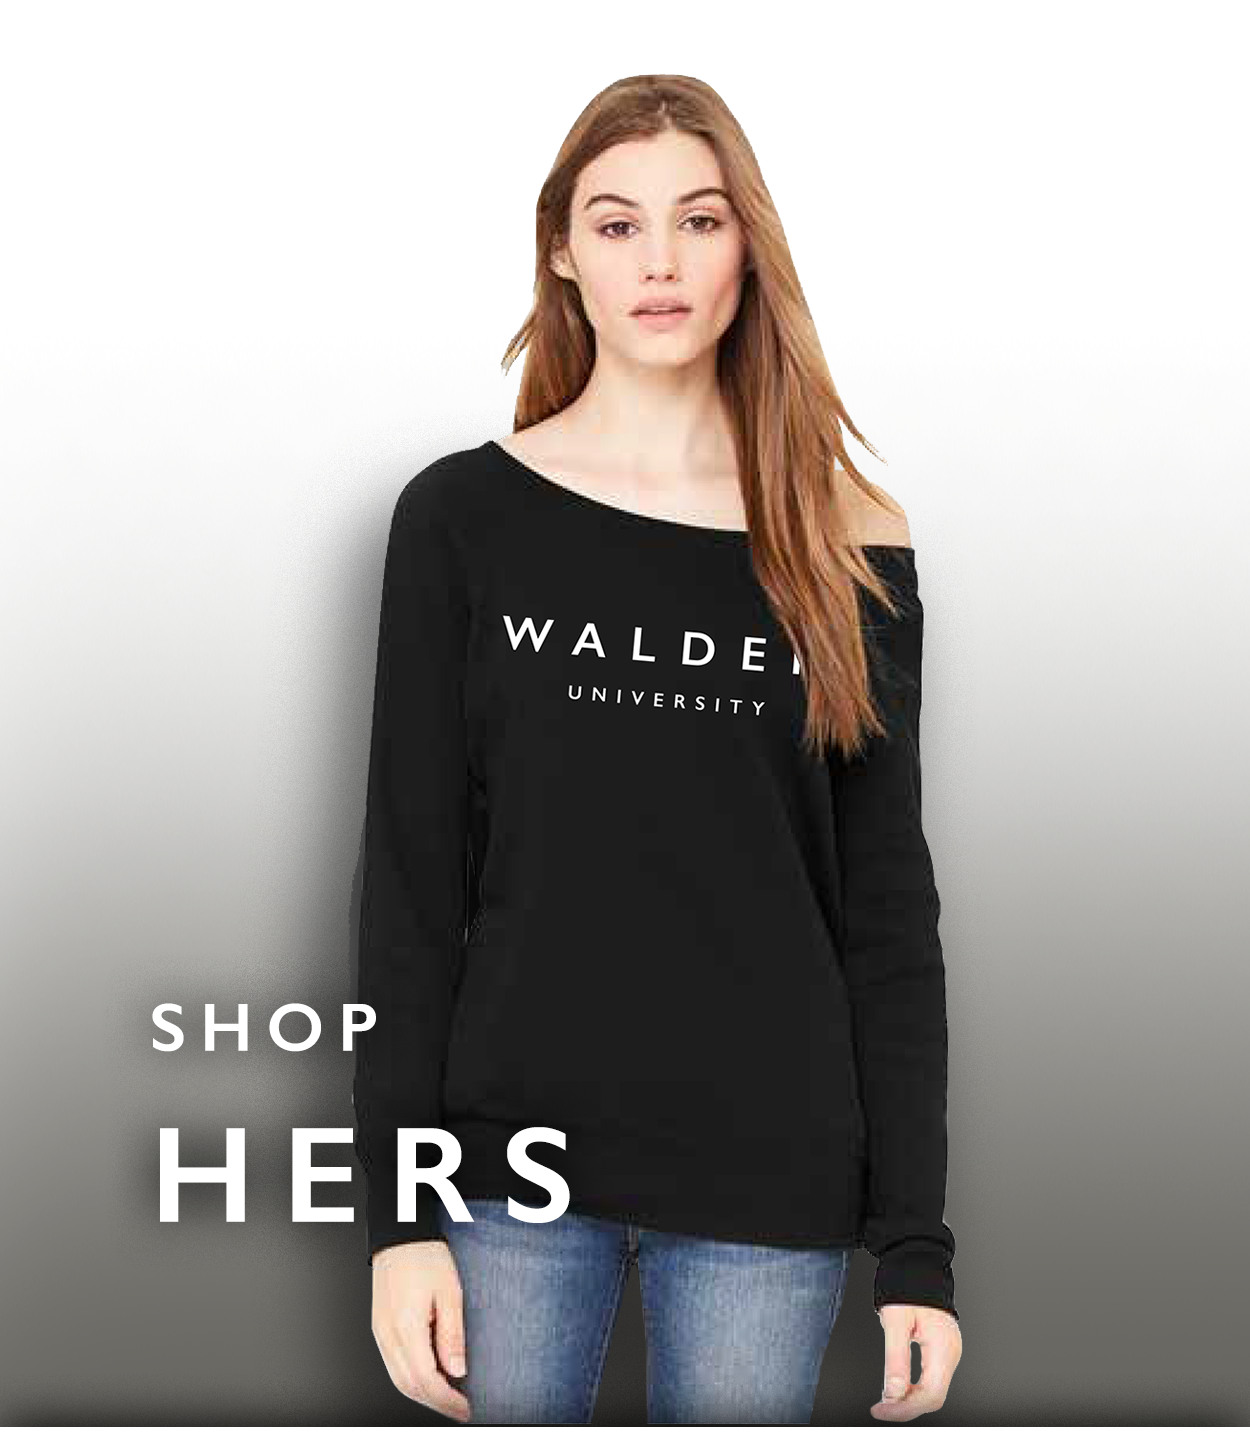 Shop hers image